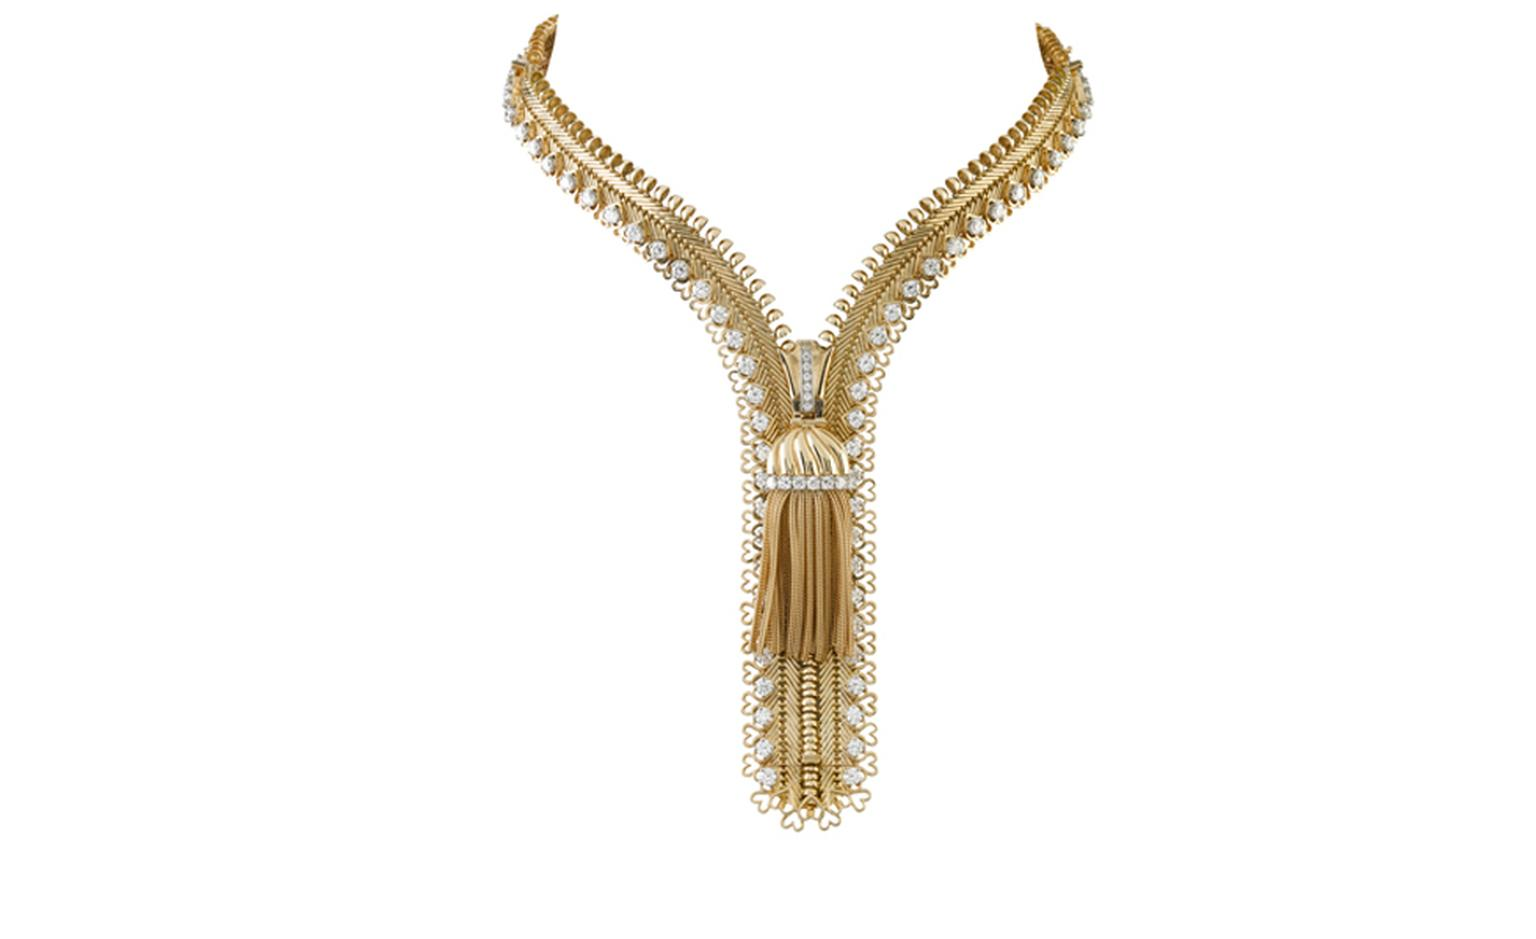 Van Cleef & Arpels, Zip Antique Necklace, yellow gold and round cut diamonds. POA